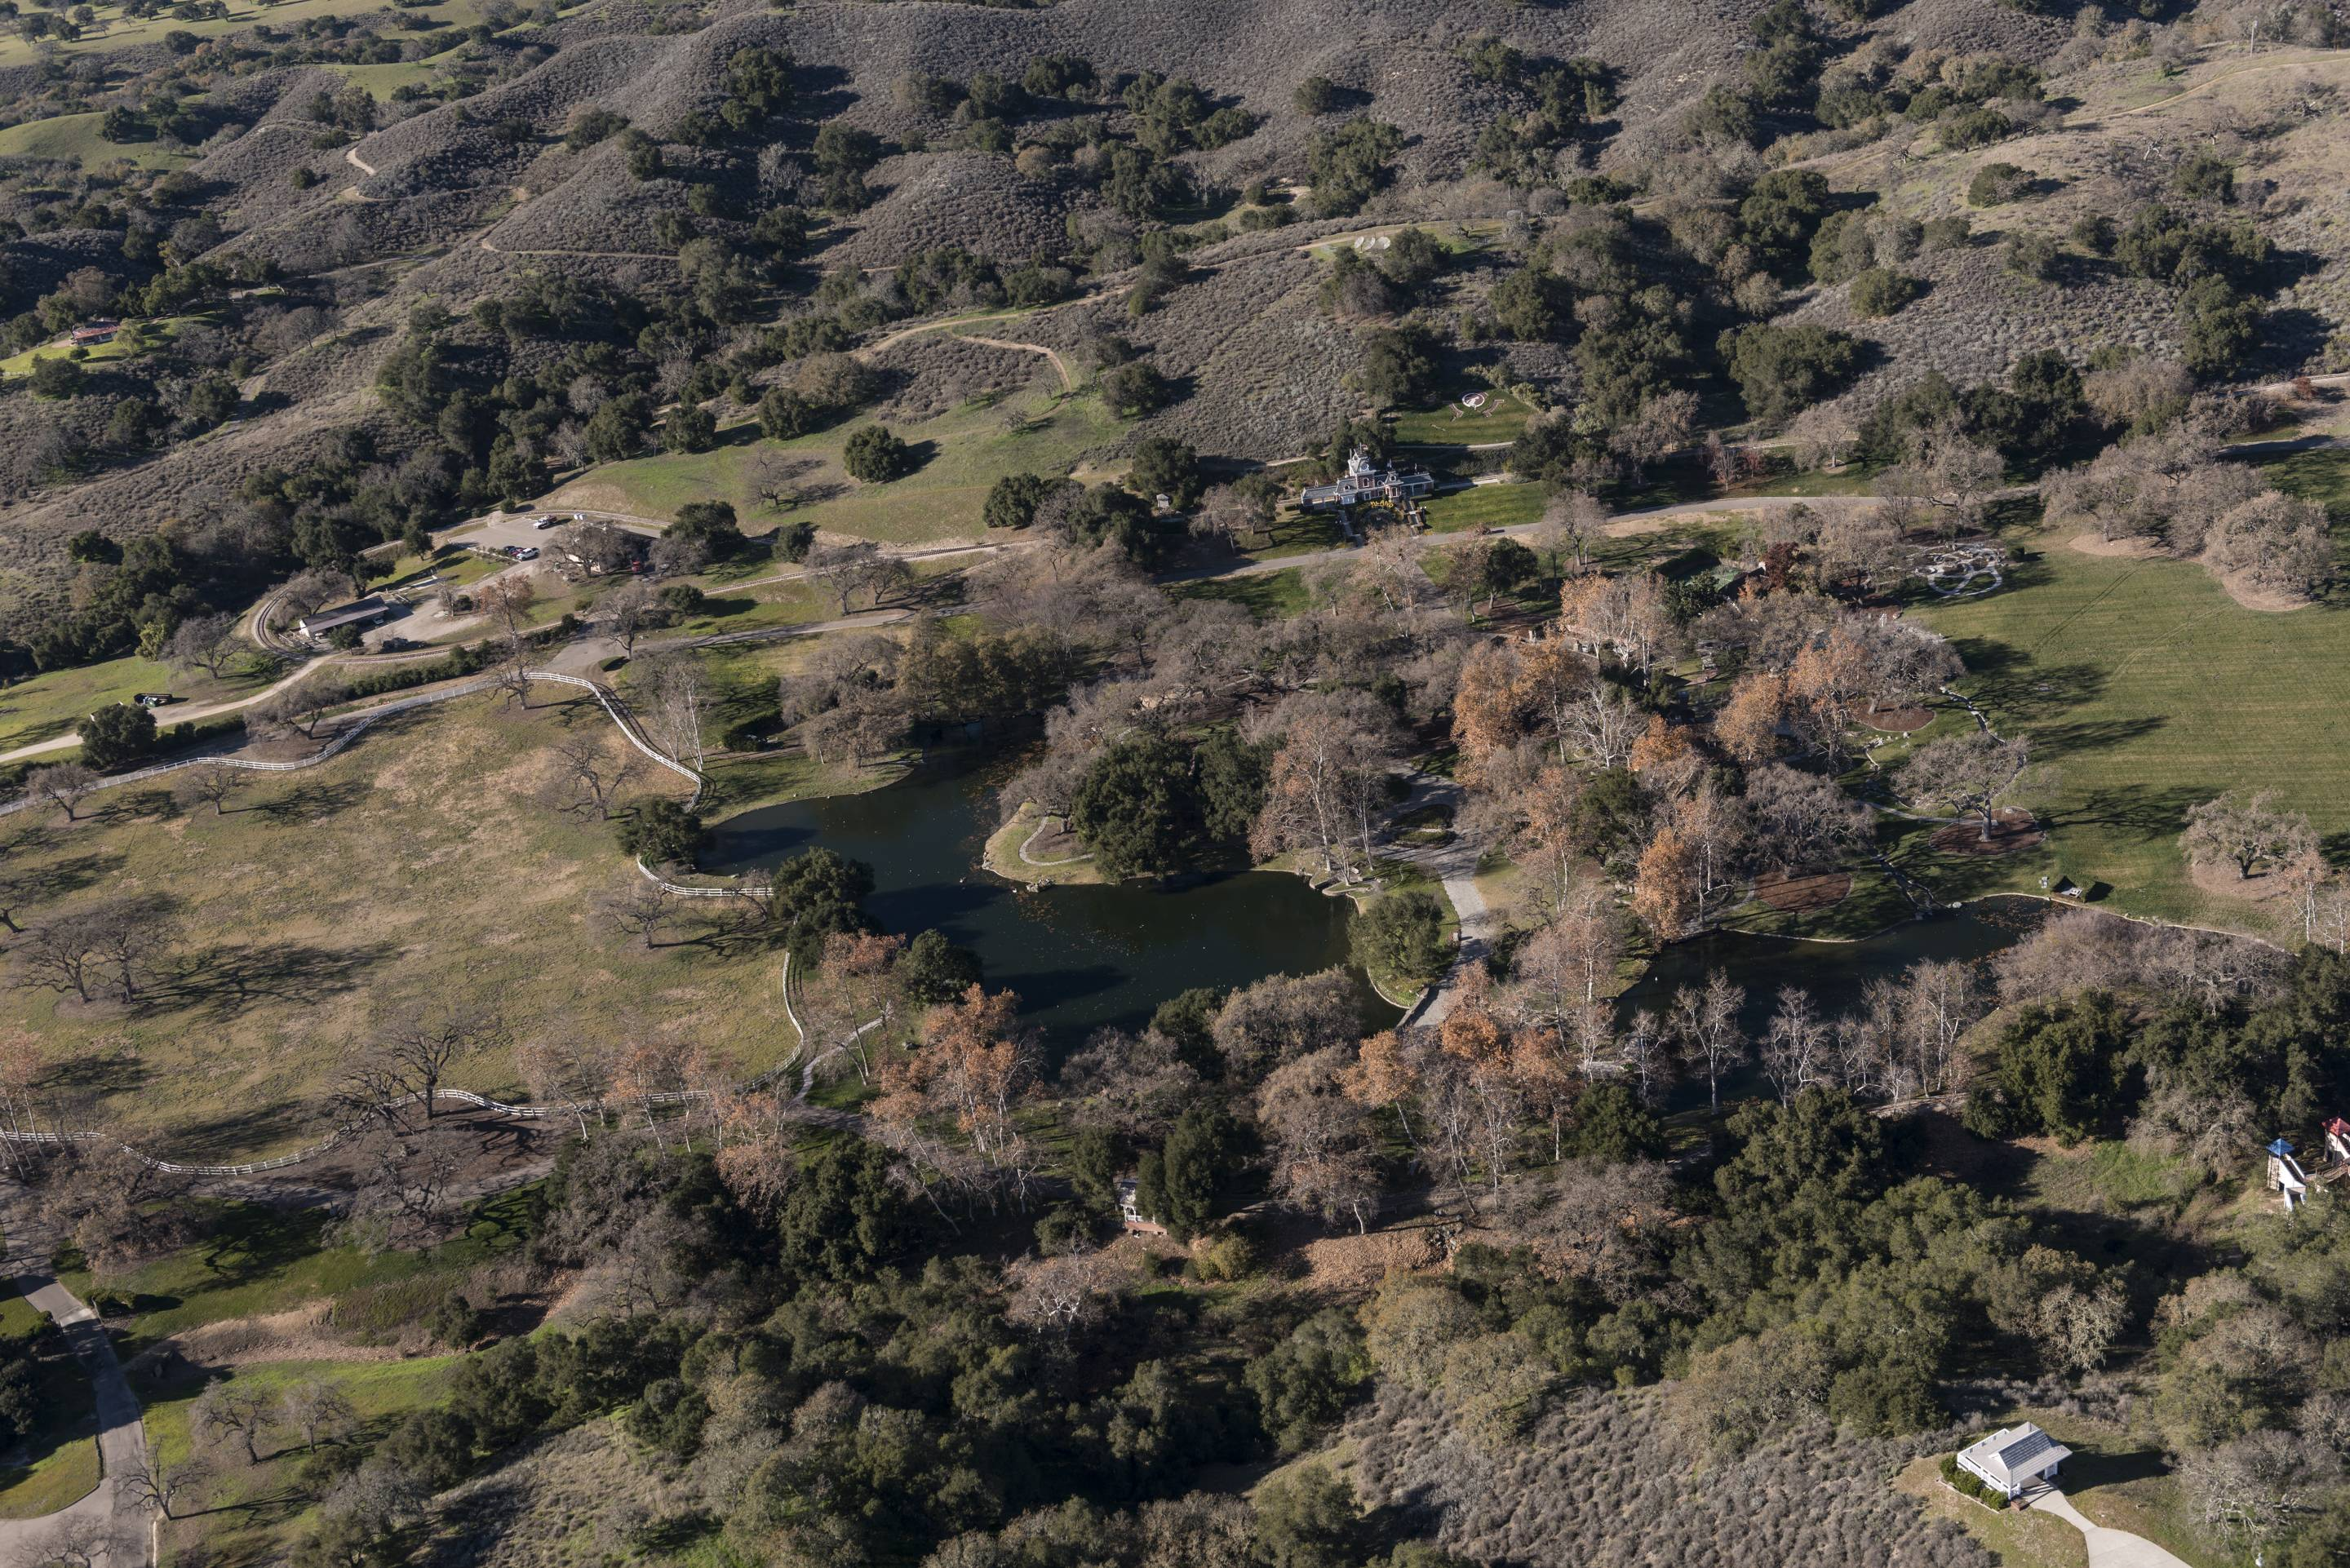 Aerial view of Neverland Ranch, once the home of famed singer Michael Jackson, in the Santa Ynez Val